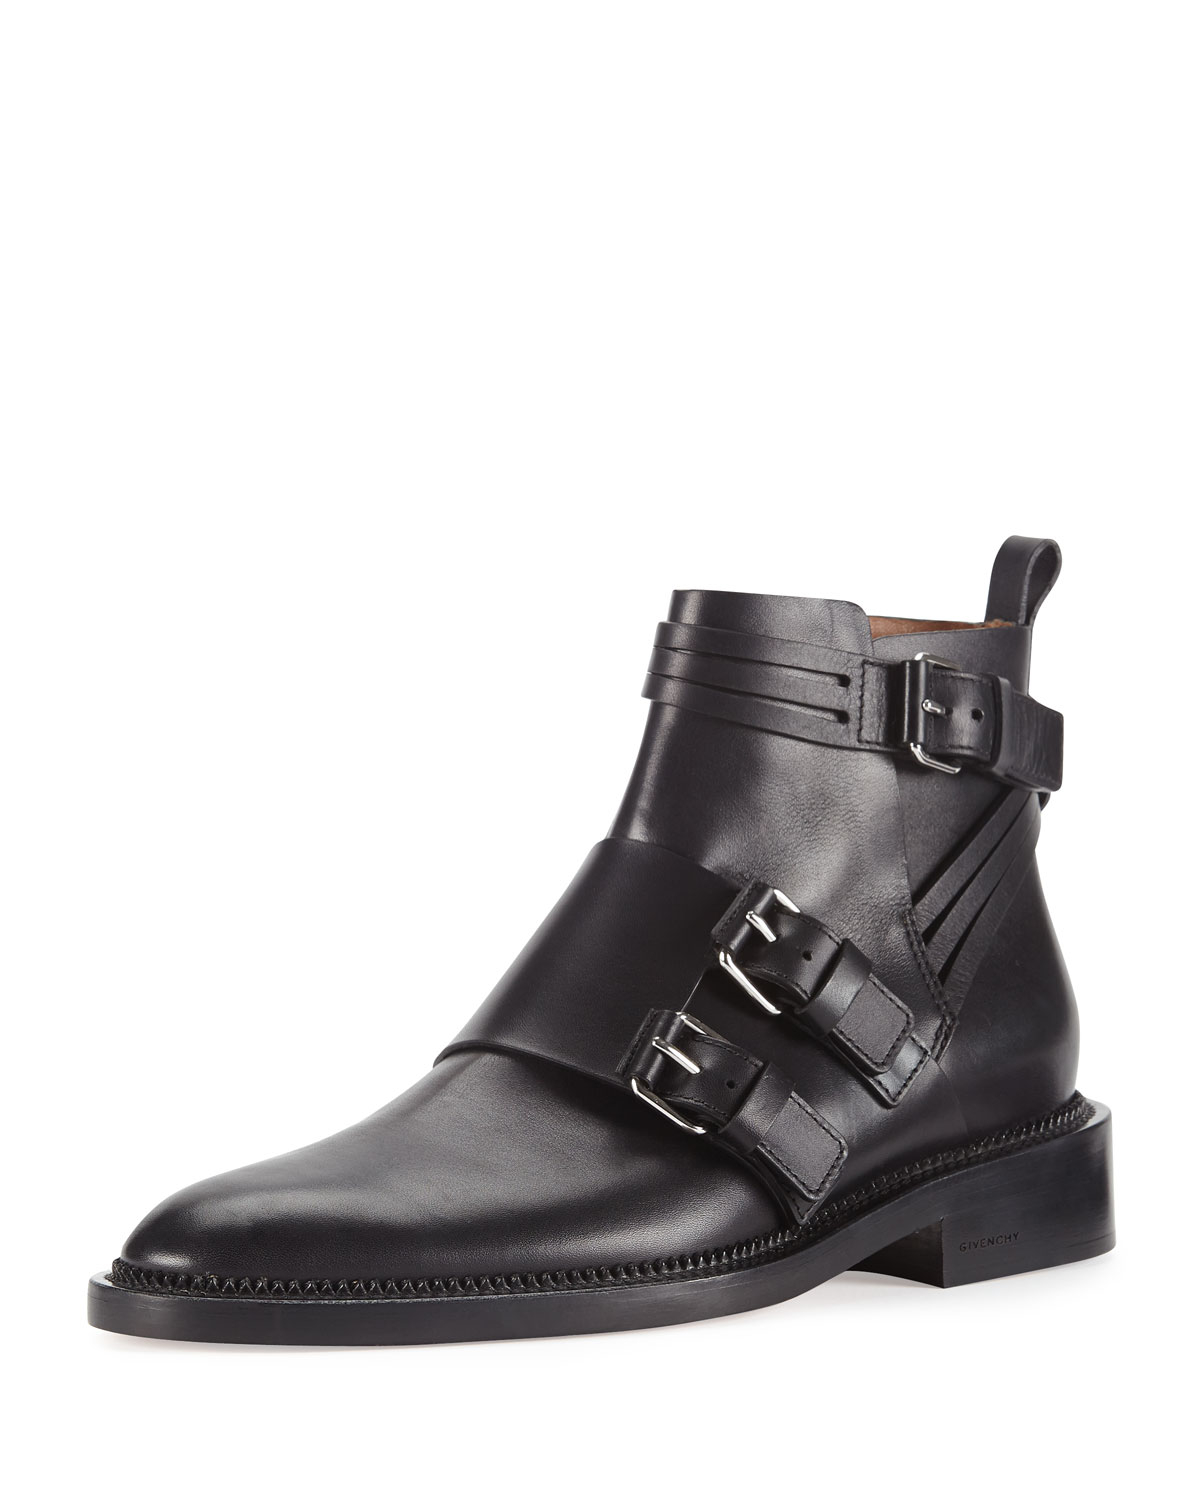 Black monk strap leather ankle boots Givenchy tPmgmkoZ